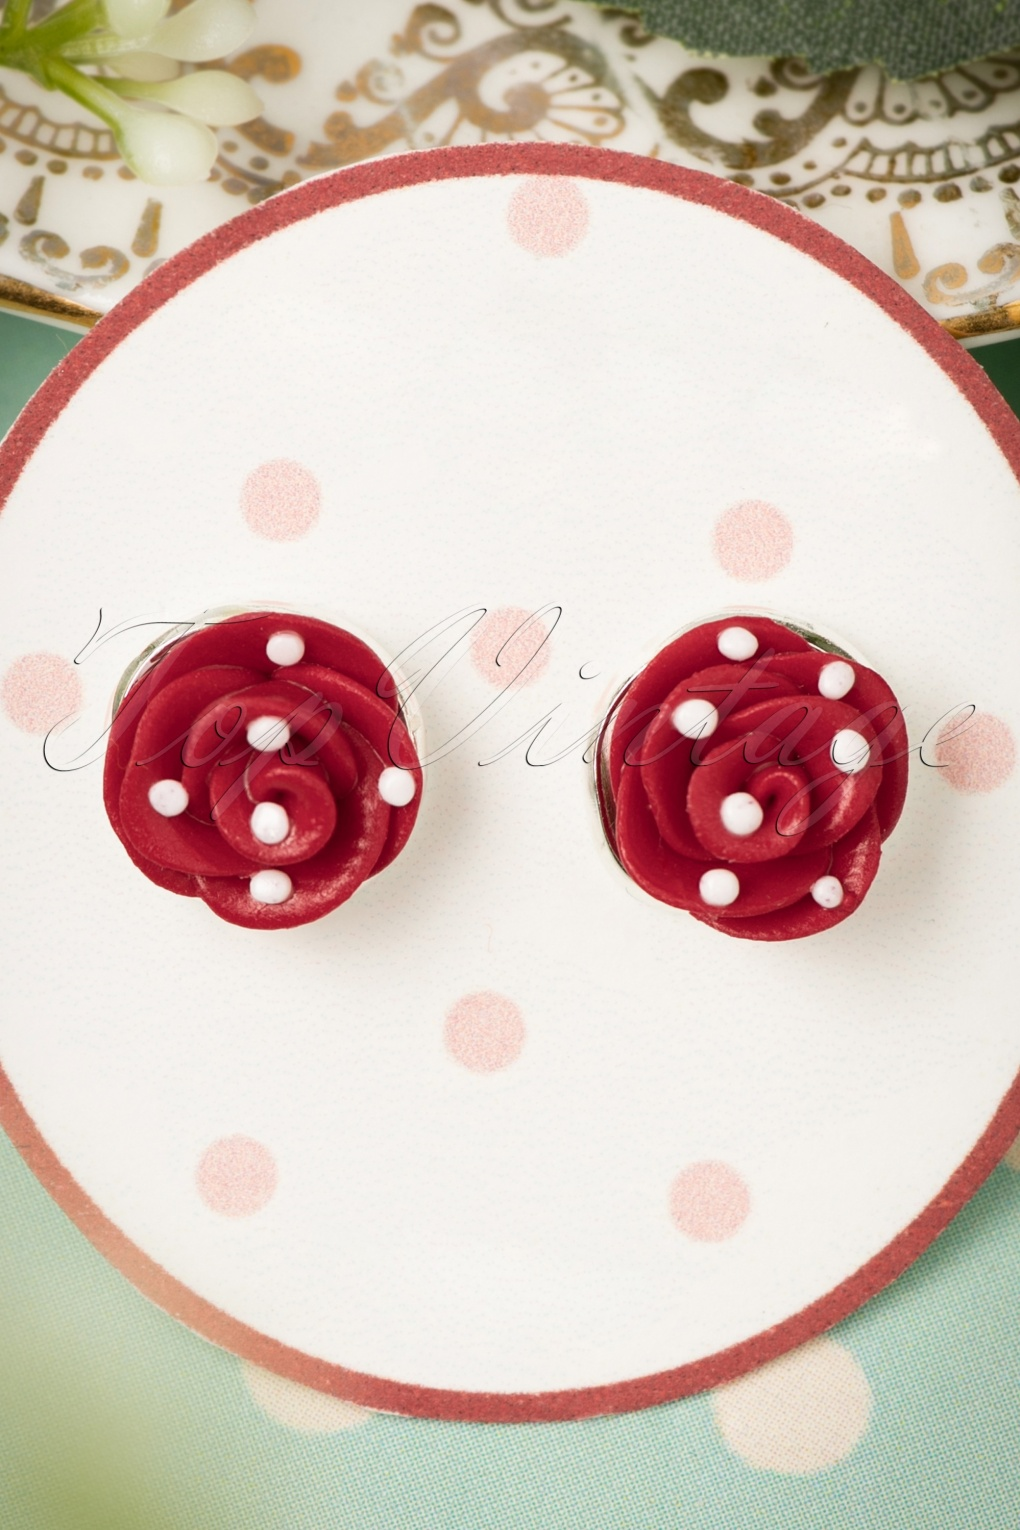 50s Jewelry: Earrings, Necklace, Brooch, Bracelet 50s Polkadots On My Red Roses Earrings £11.48 AT vintagedancer.com